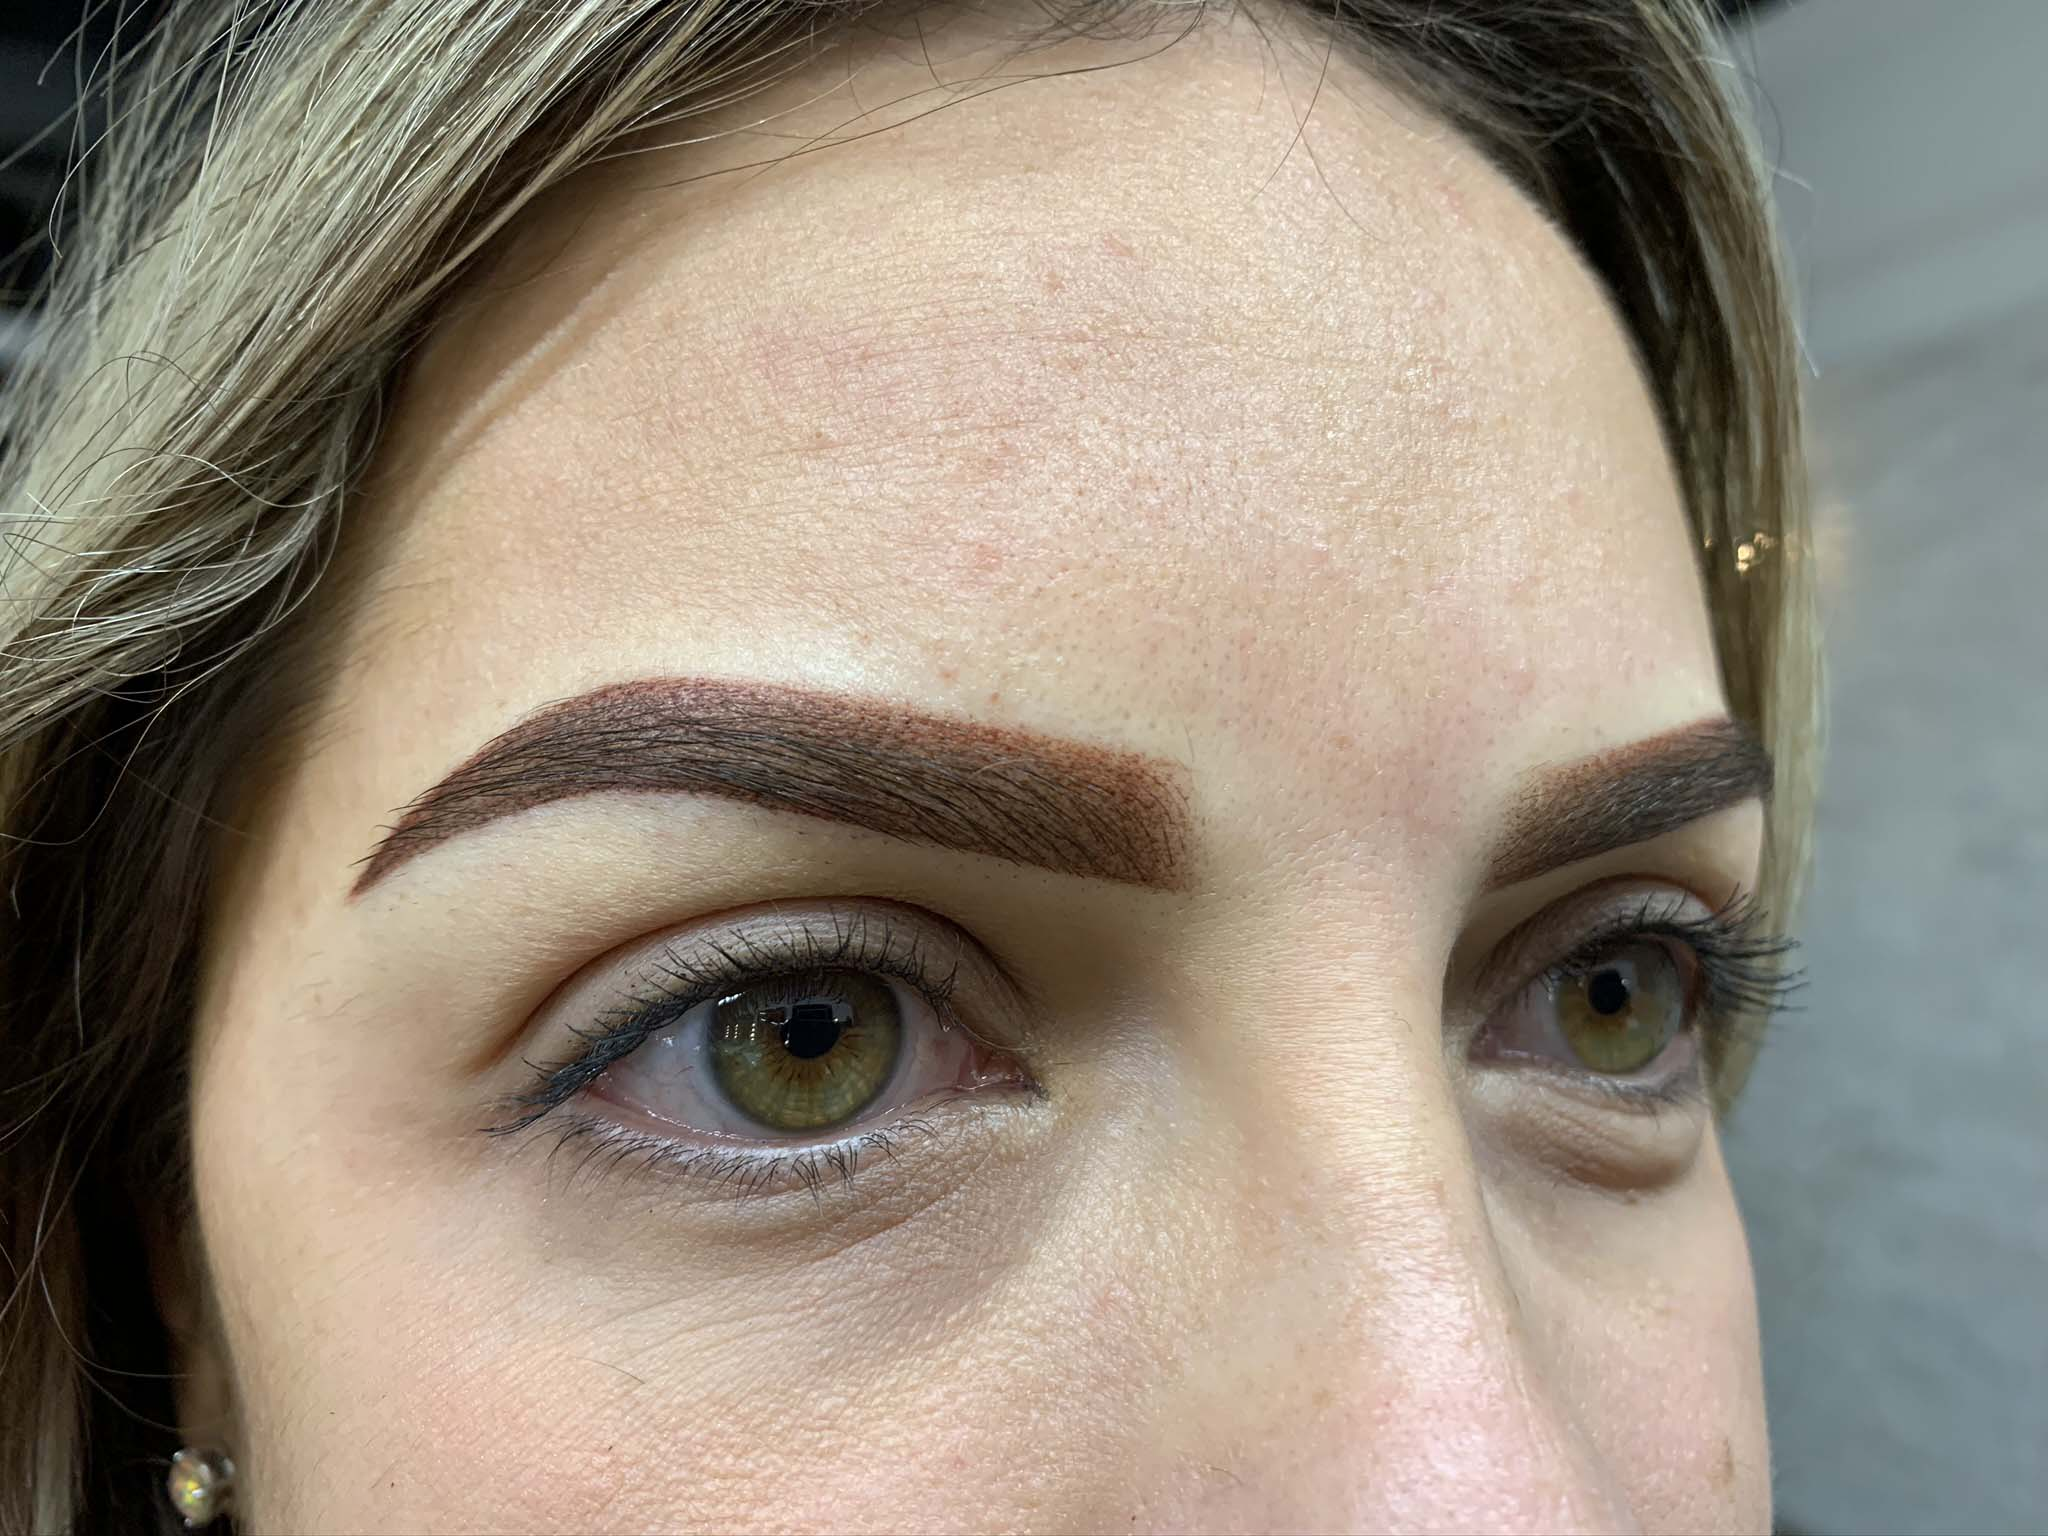 Scabbing Eyebrow Tattoo Healing Process Pictures - Best ...